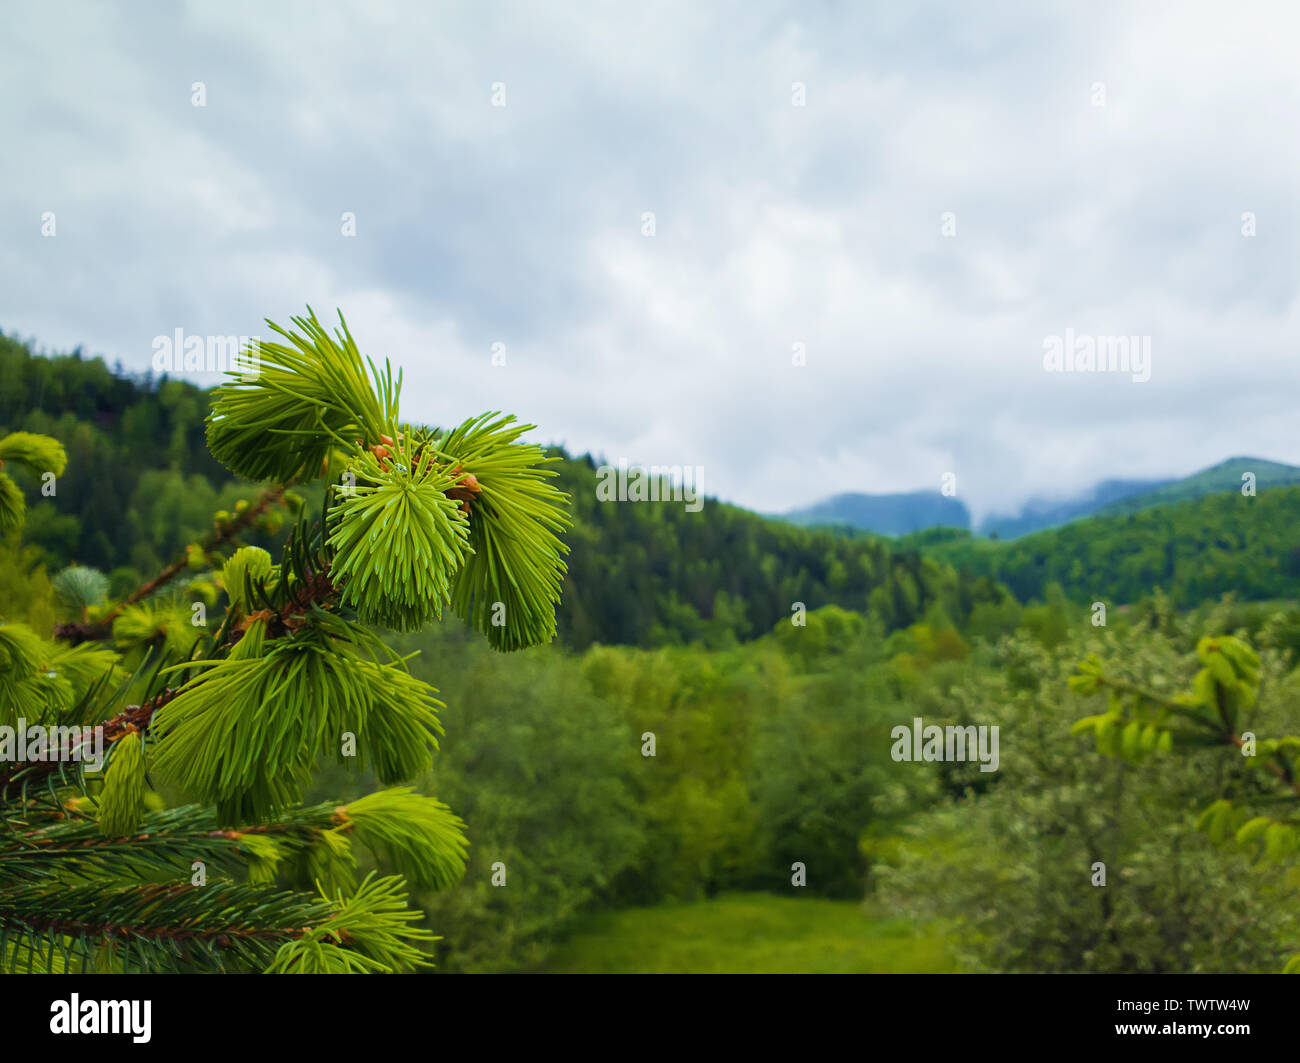 Close up of fir branches with young sprouts buds over the spring mountain background. Coniferous forest on the hills. Fresh green tones landscape. Stock Photo